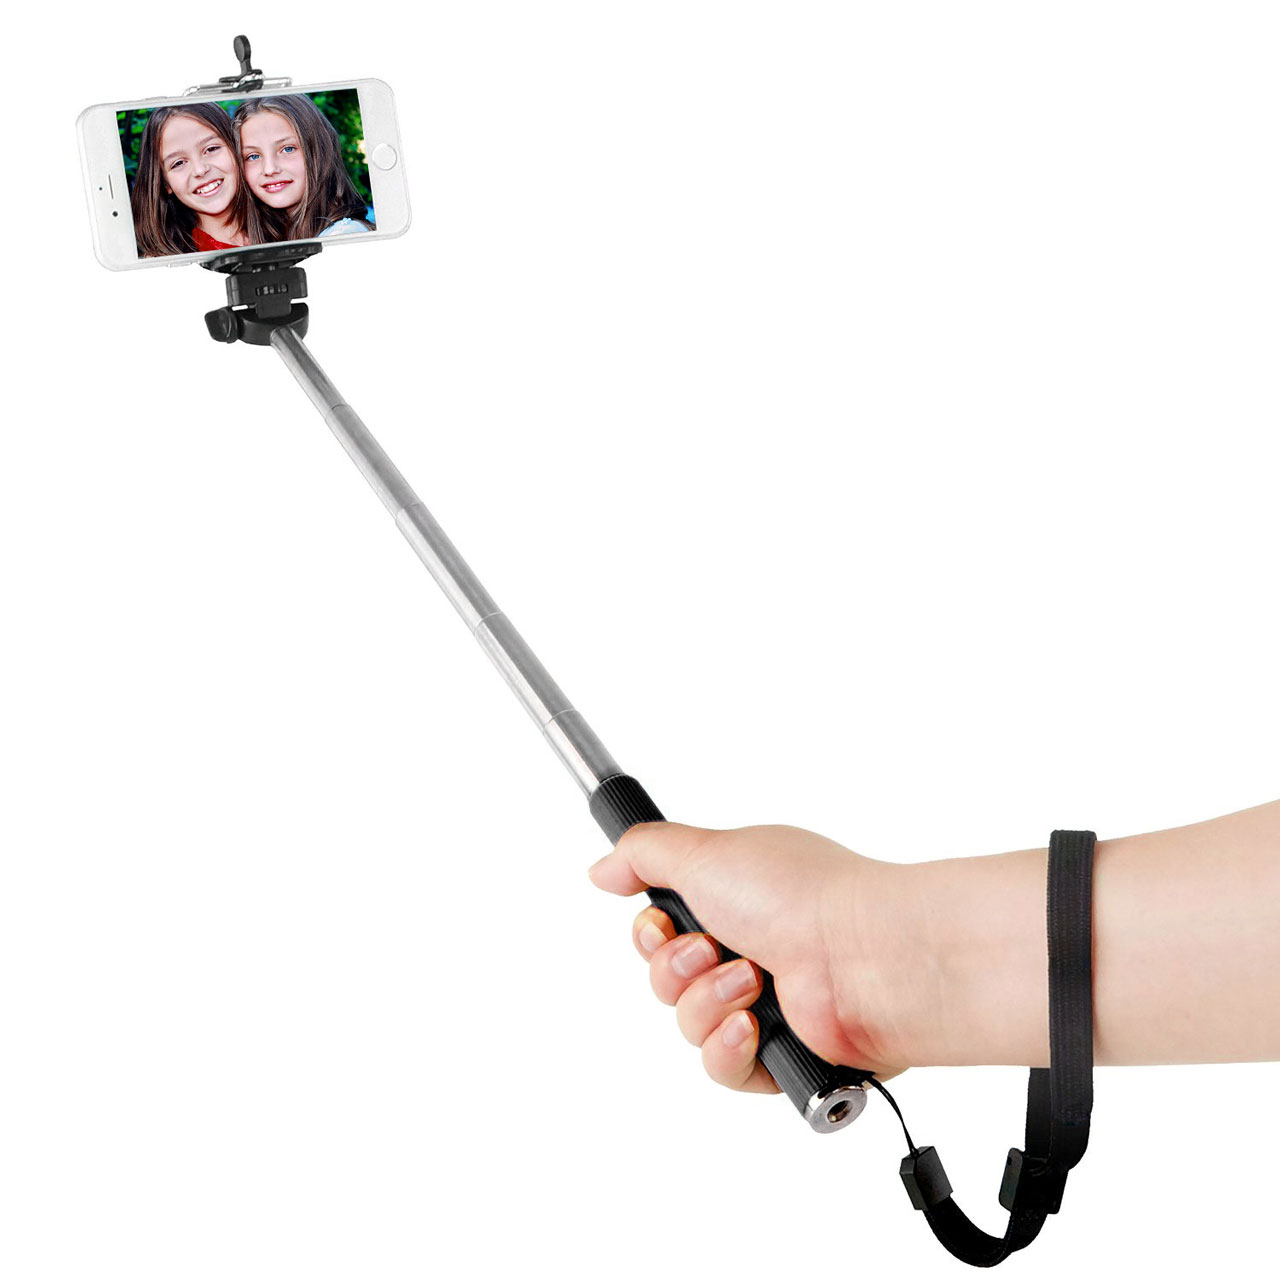 selfie stick in hand